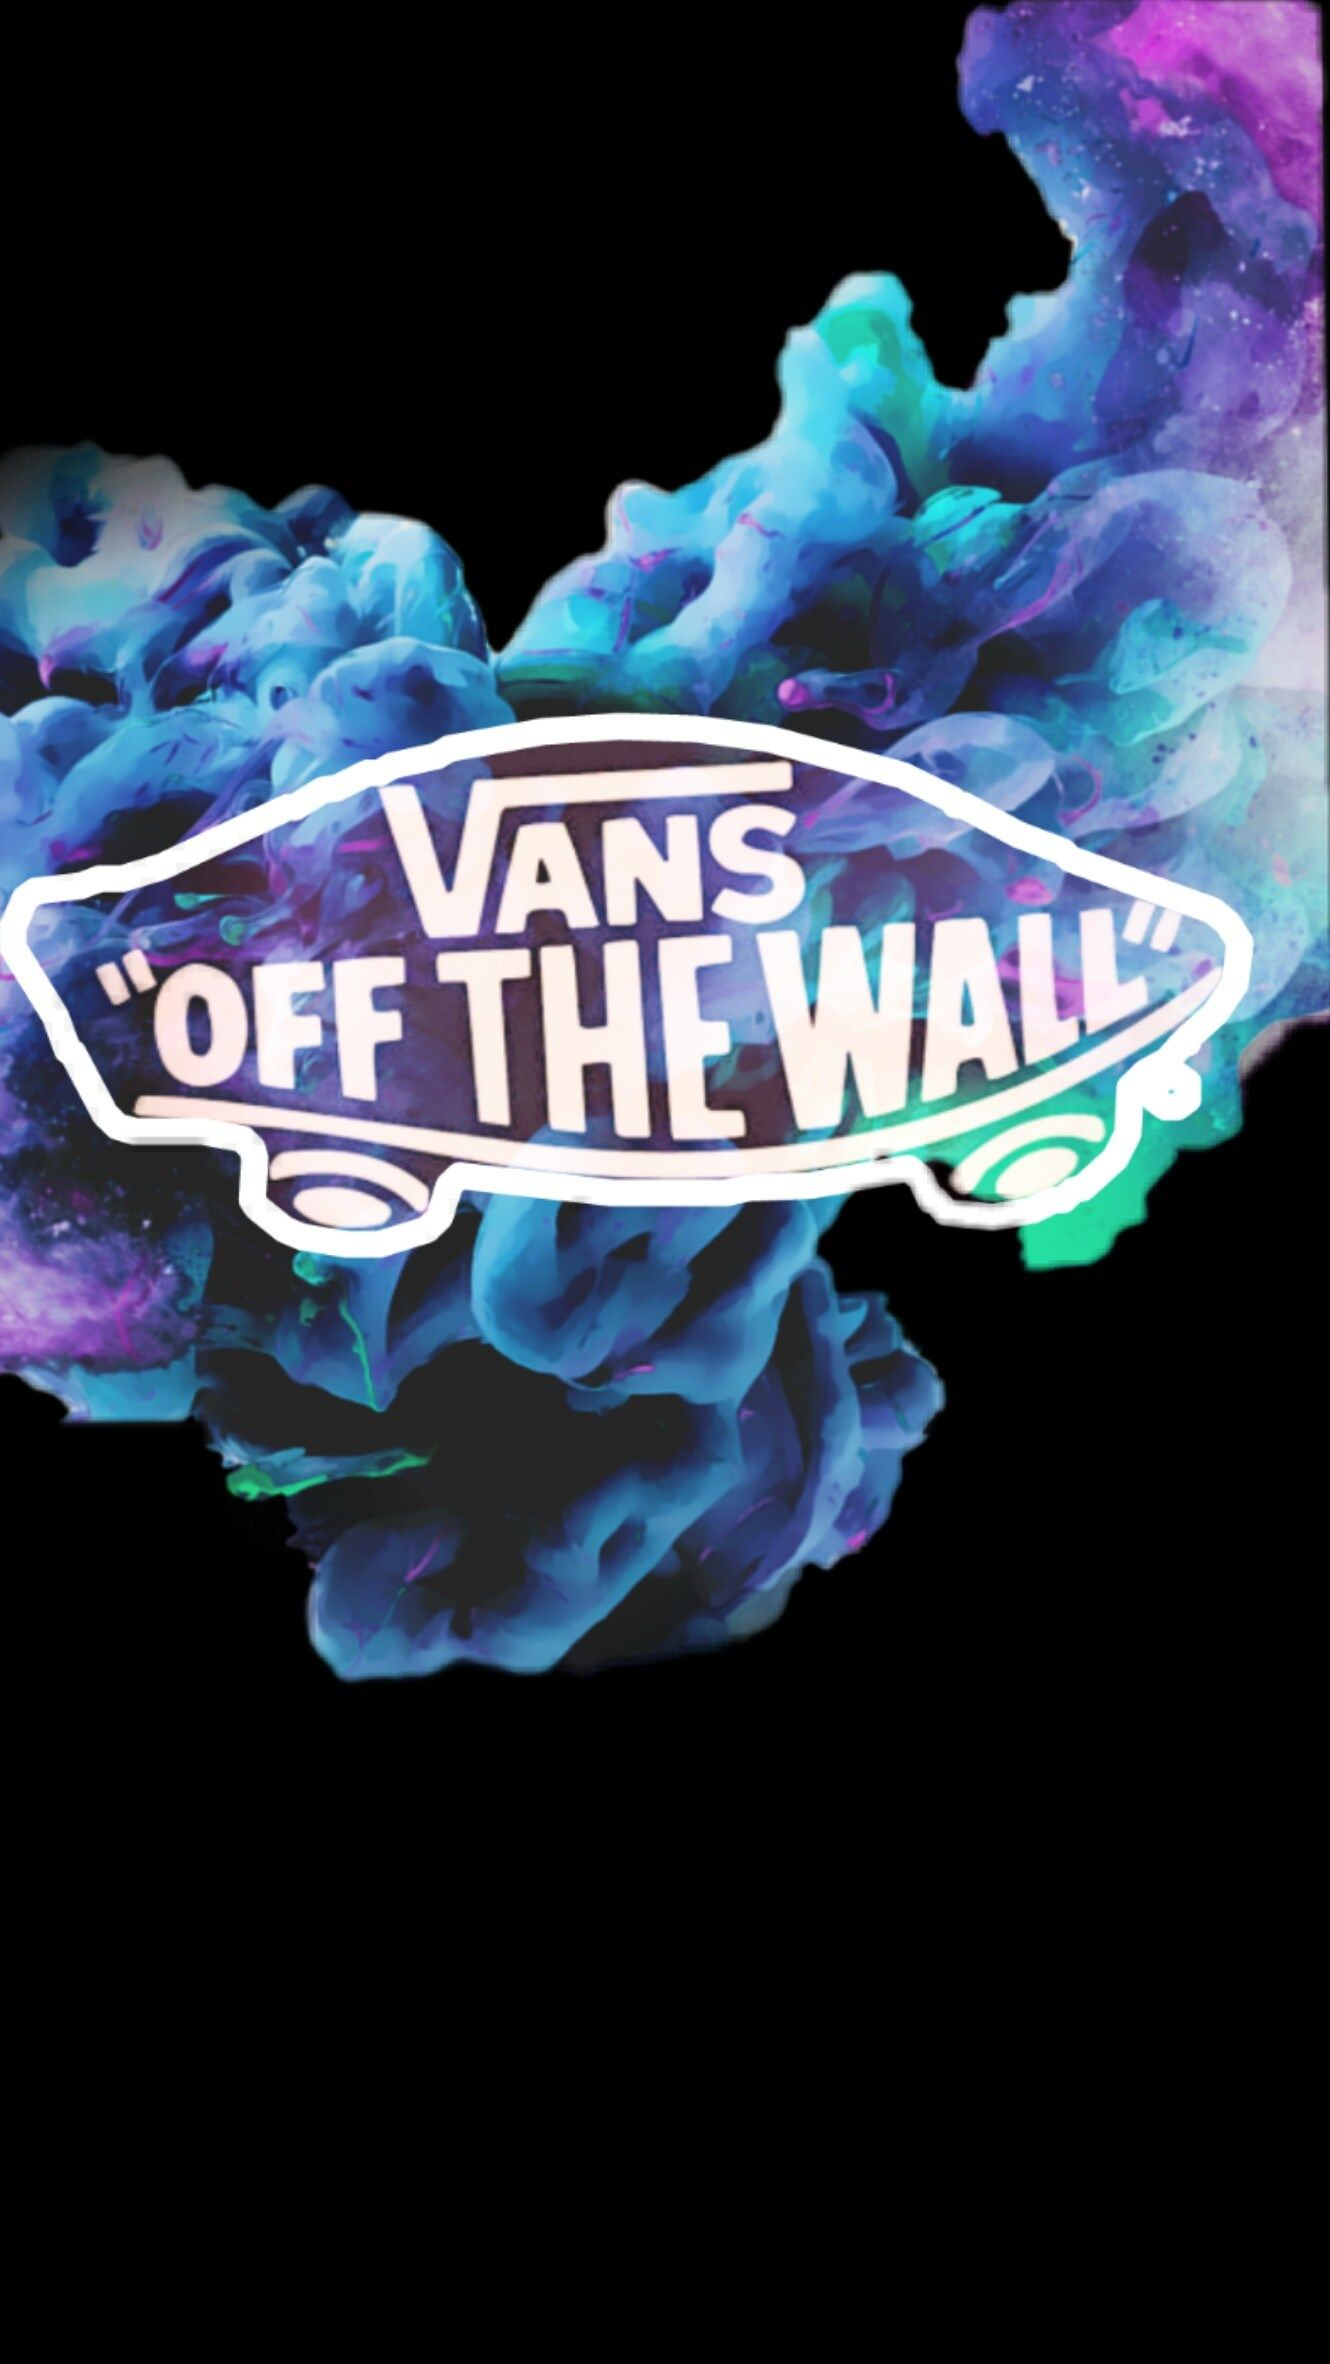 Vans Off The Wall Wallpapers Top Free Vans Off The Wall